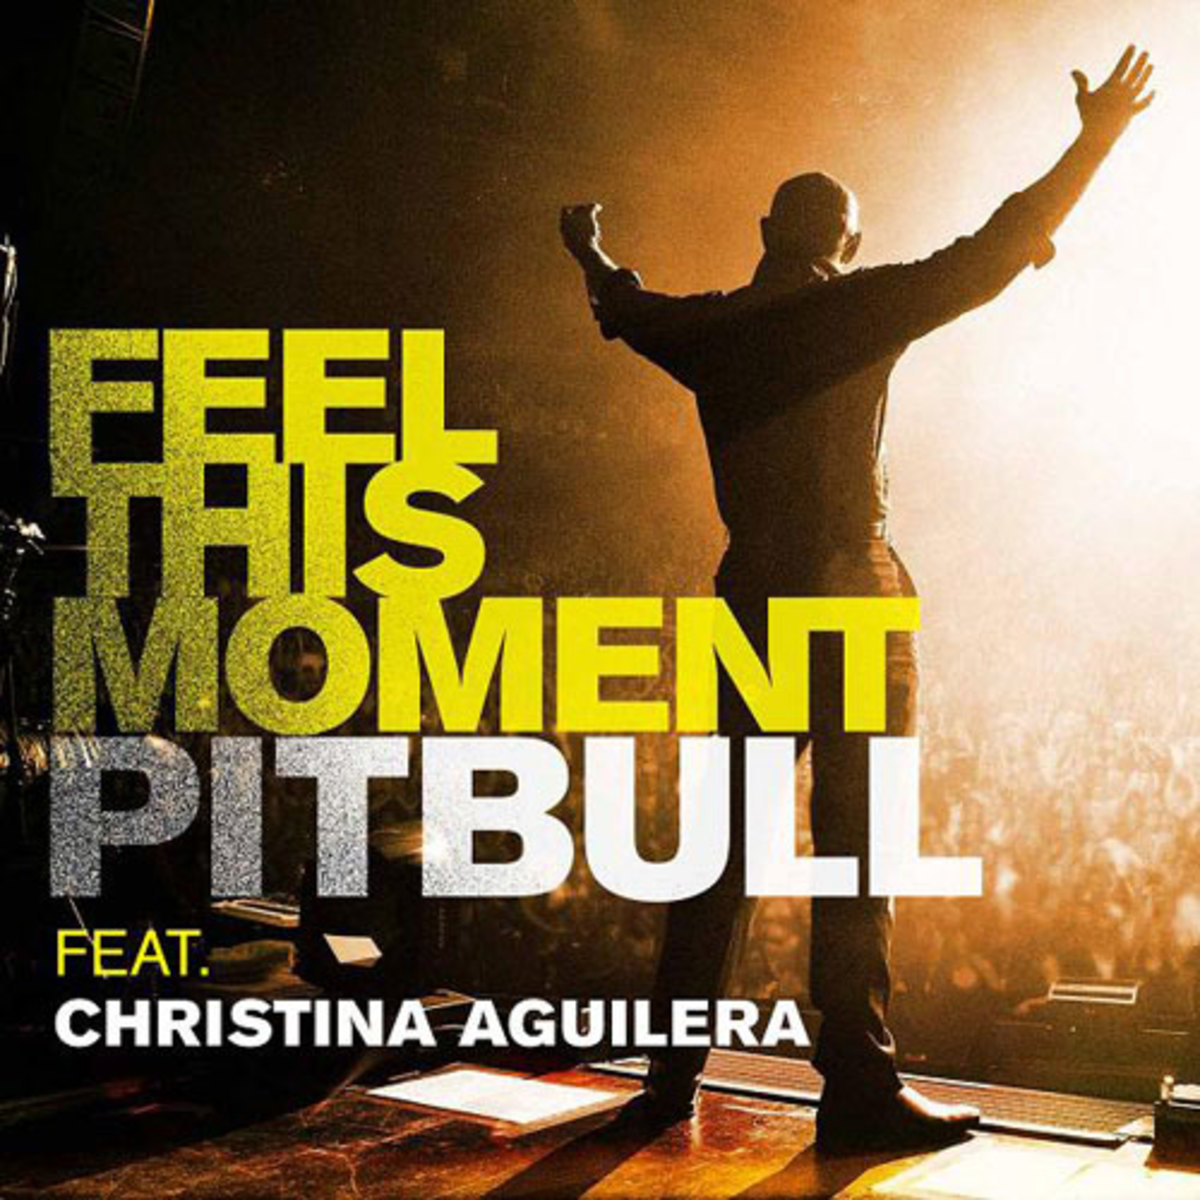 pitbull-feelthismoment.jpg